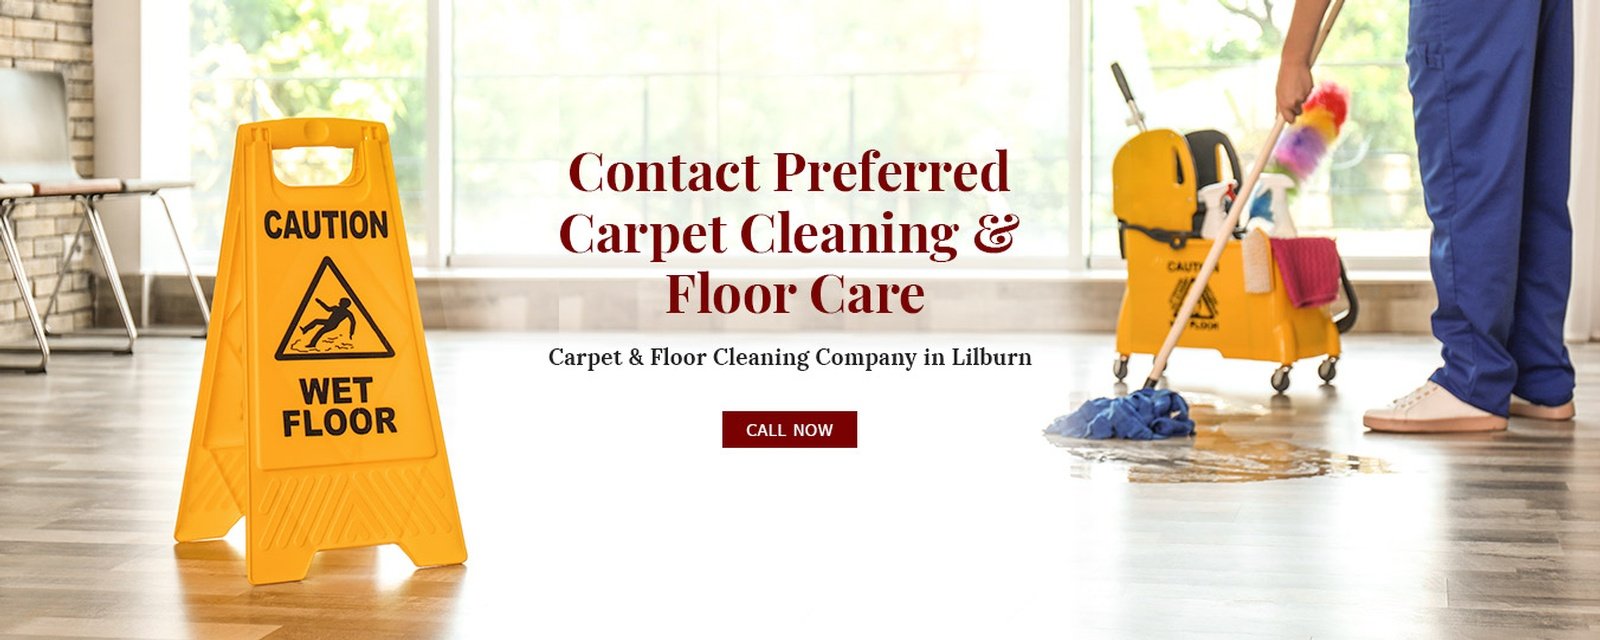 Contact Preferred Carpet Cleaning and Floor Care - Carpet and Floor Cleaning Company Lilburn